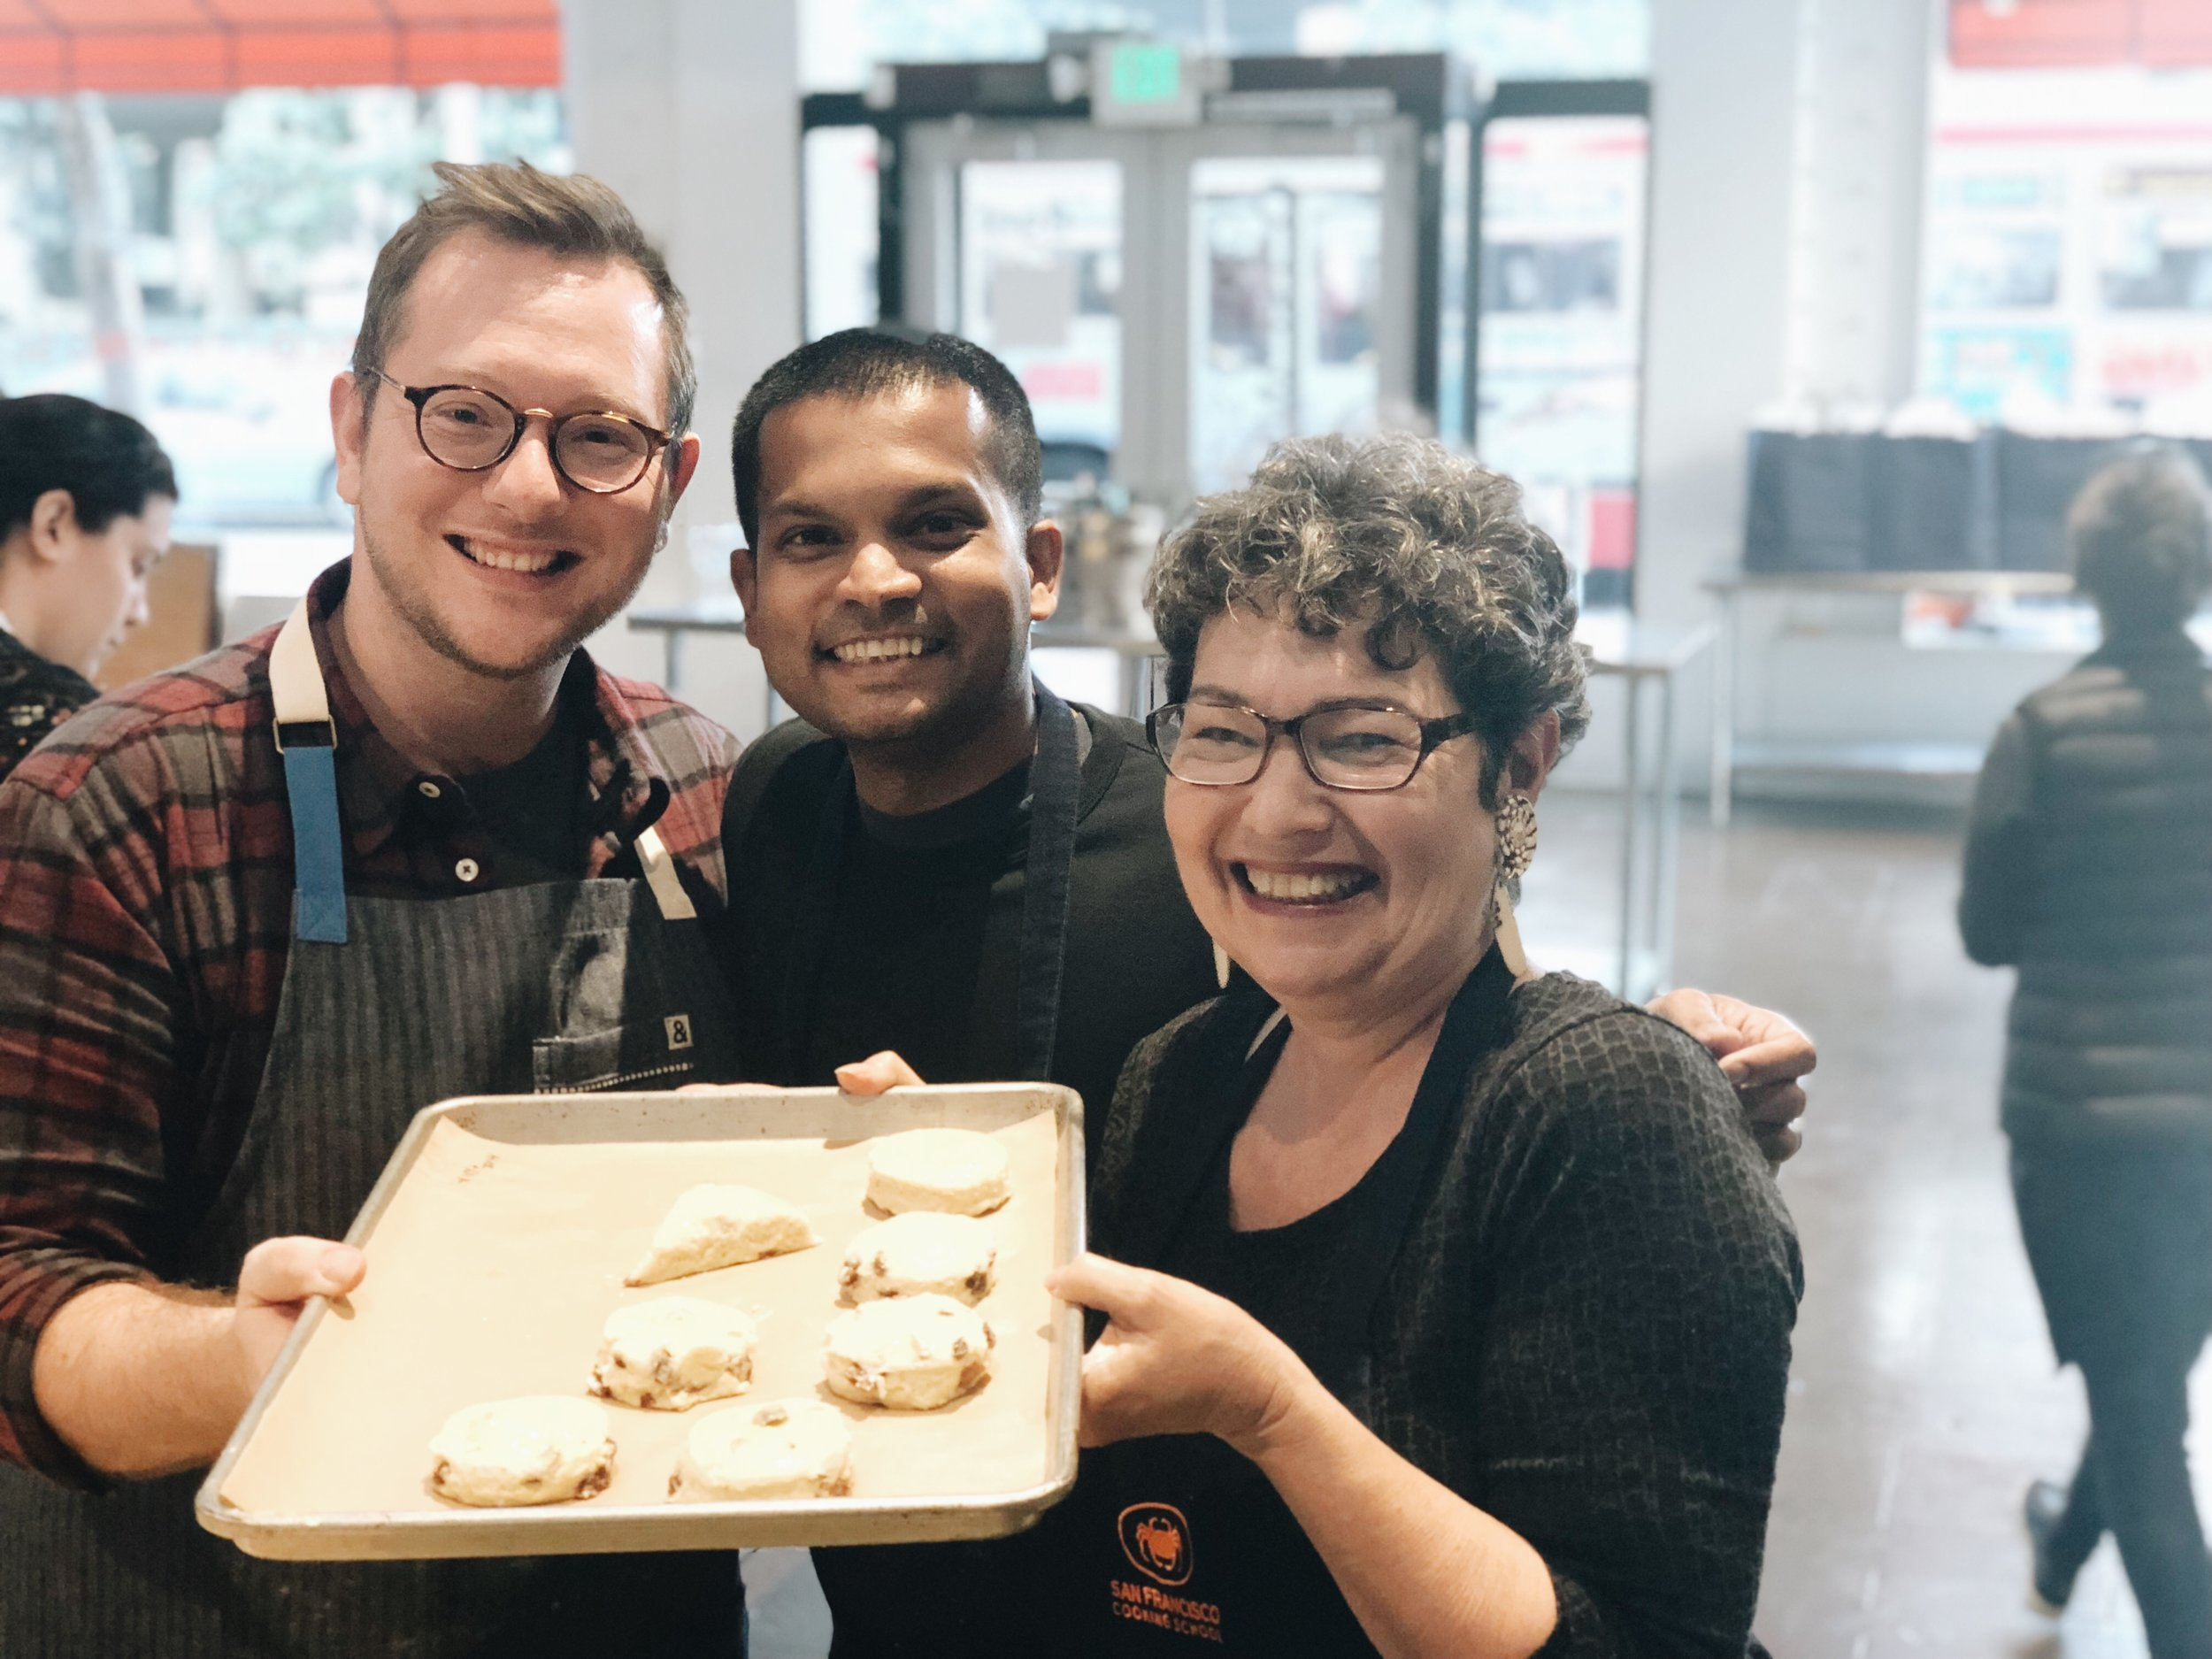 Edd Kimber, Nik Sharma and Alice Medrich at SF Cooking School | Nik Sharma Photography